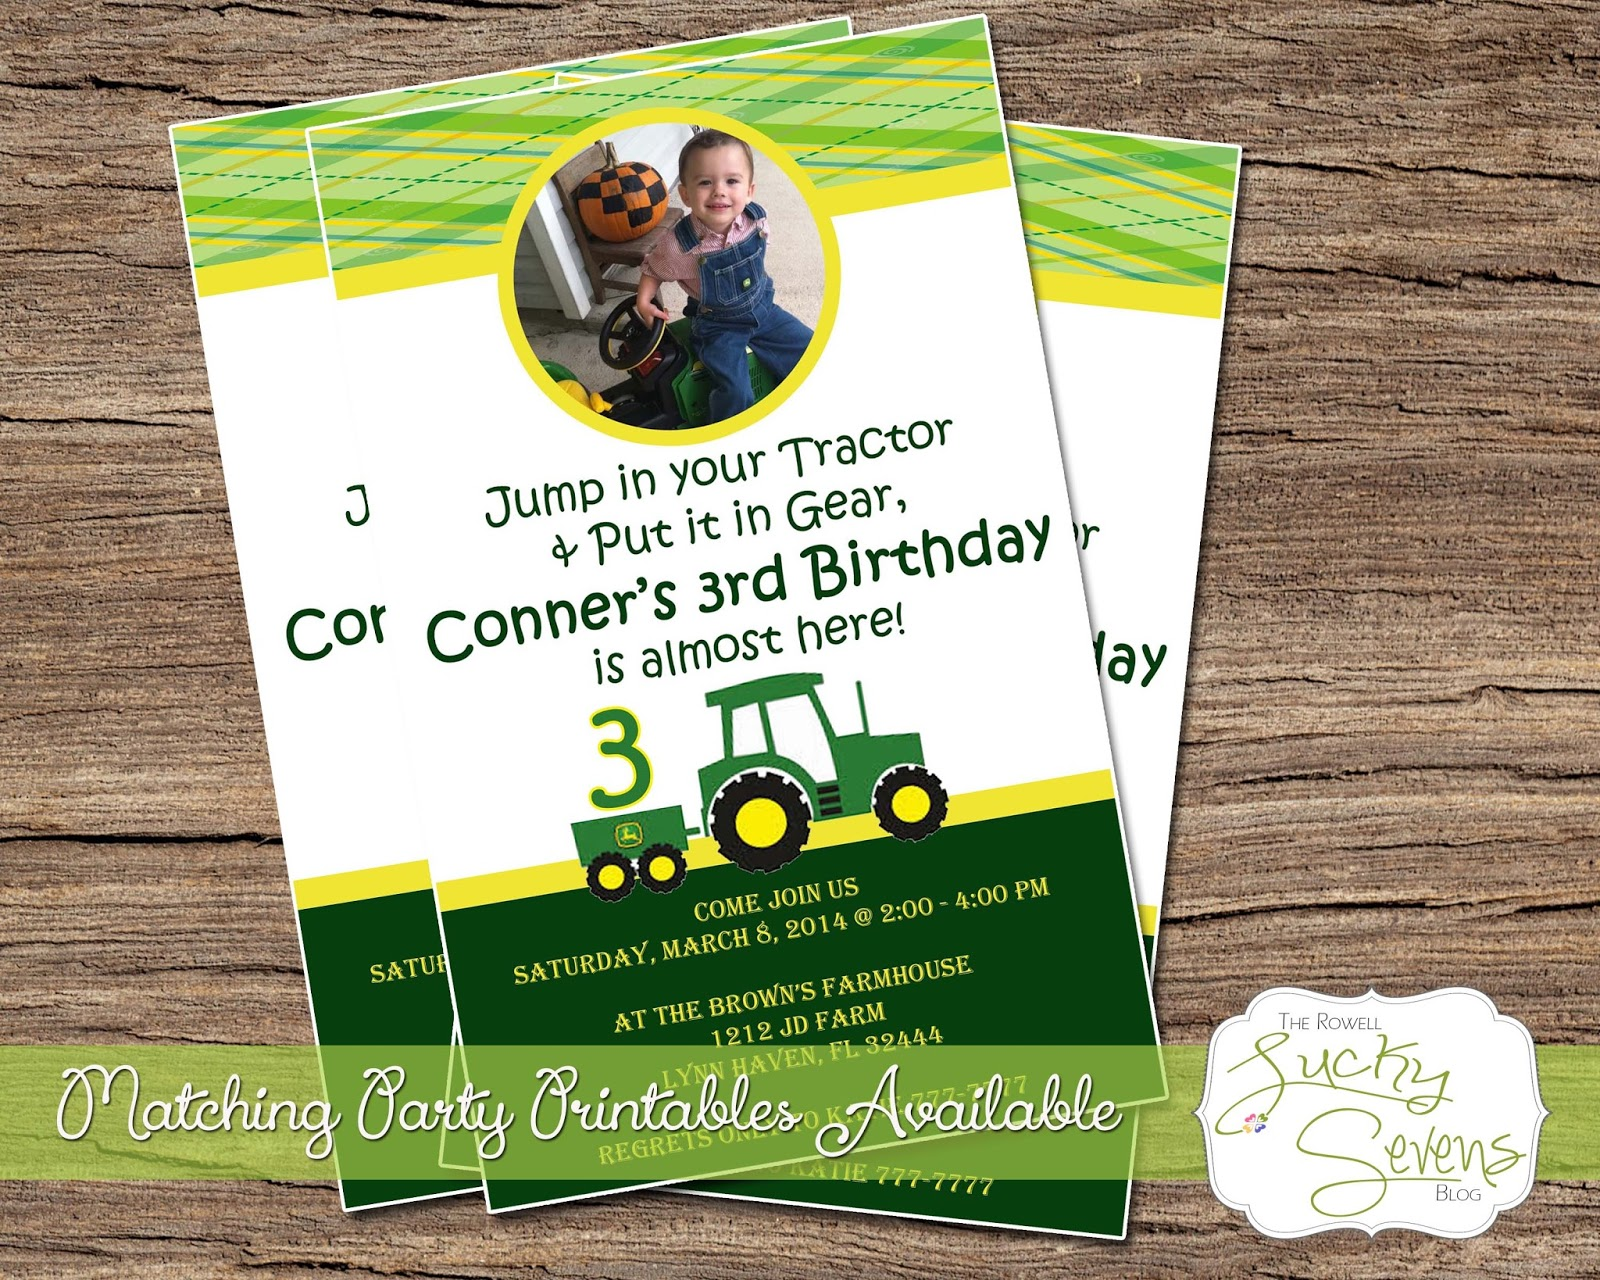 email party invitations plumegiant com birthday party archives u2014 criolla brithday u0026 wedding lucky sevens lucky7s studio john deere - John Deere Party Invitations